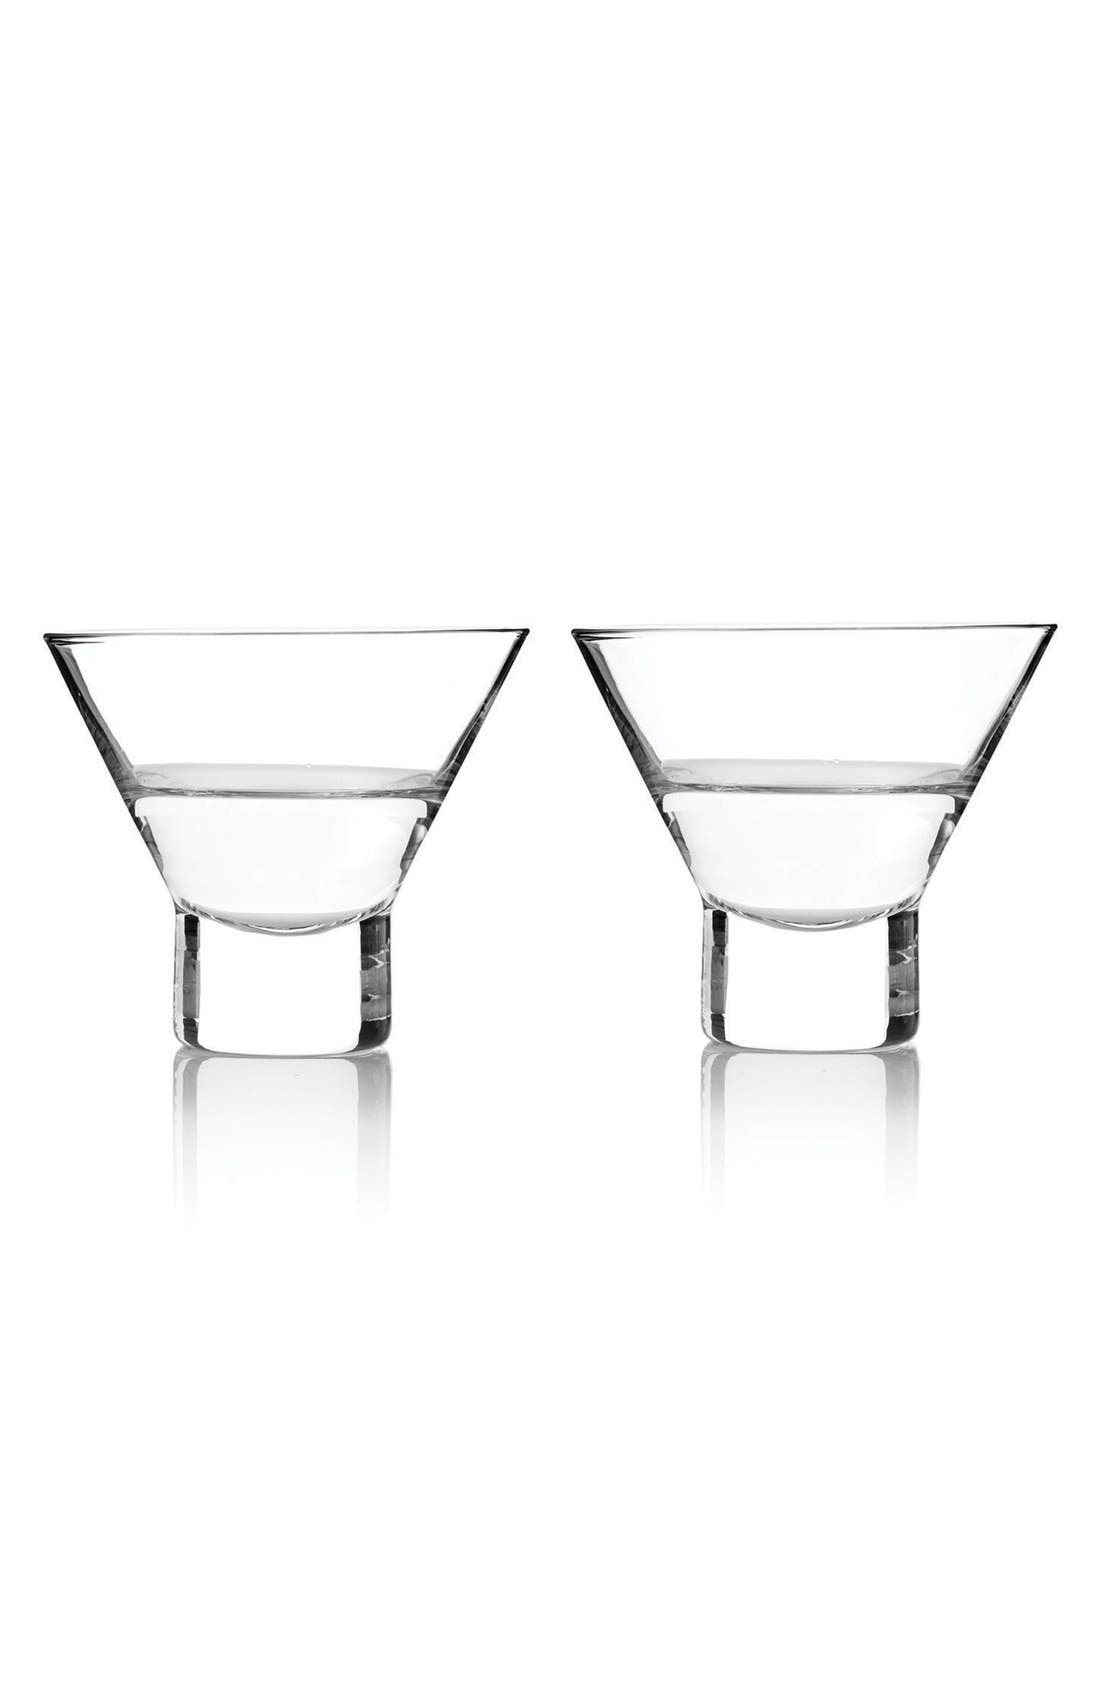 Alternate Image 1 Selected - Viski by True Fabrications Stemless Martini Glasses (Set of 2)